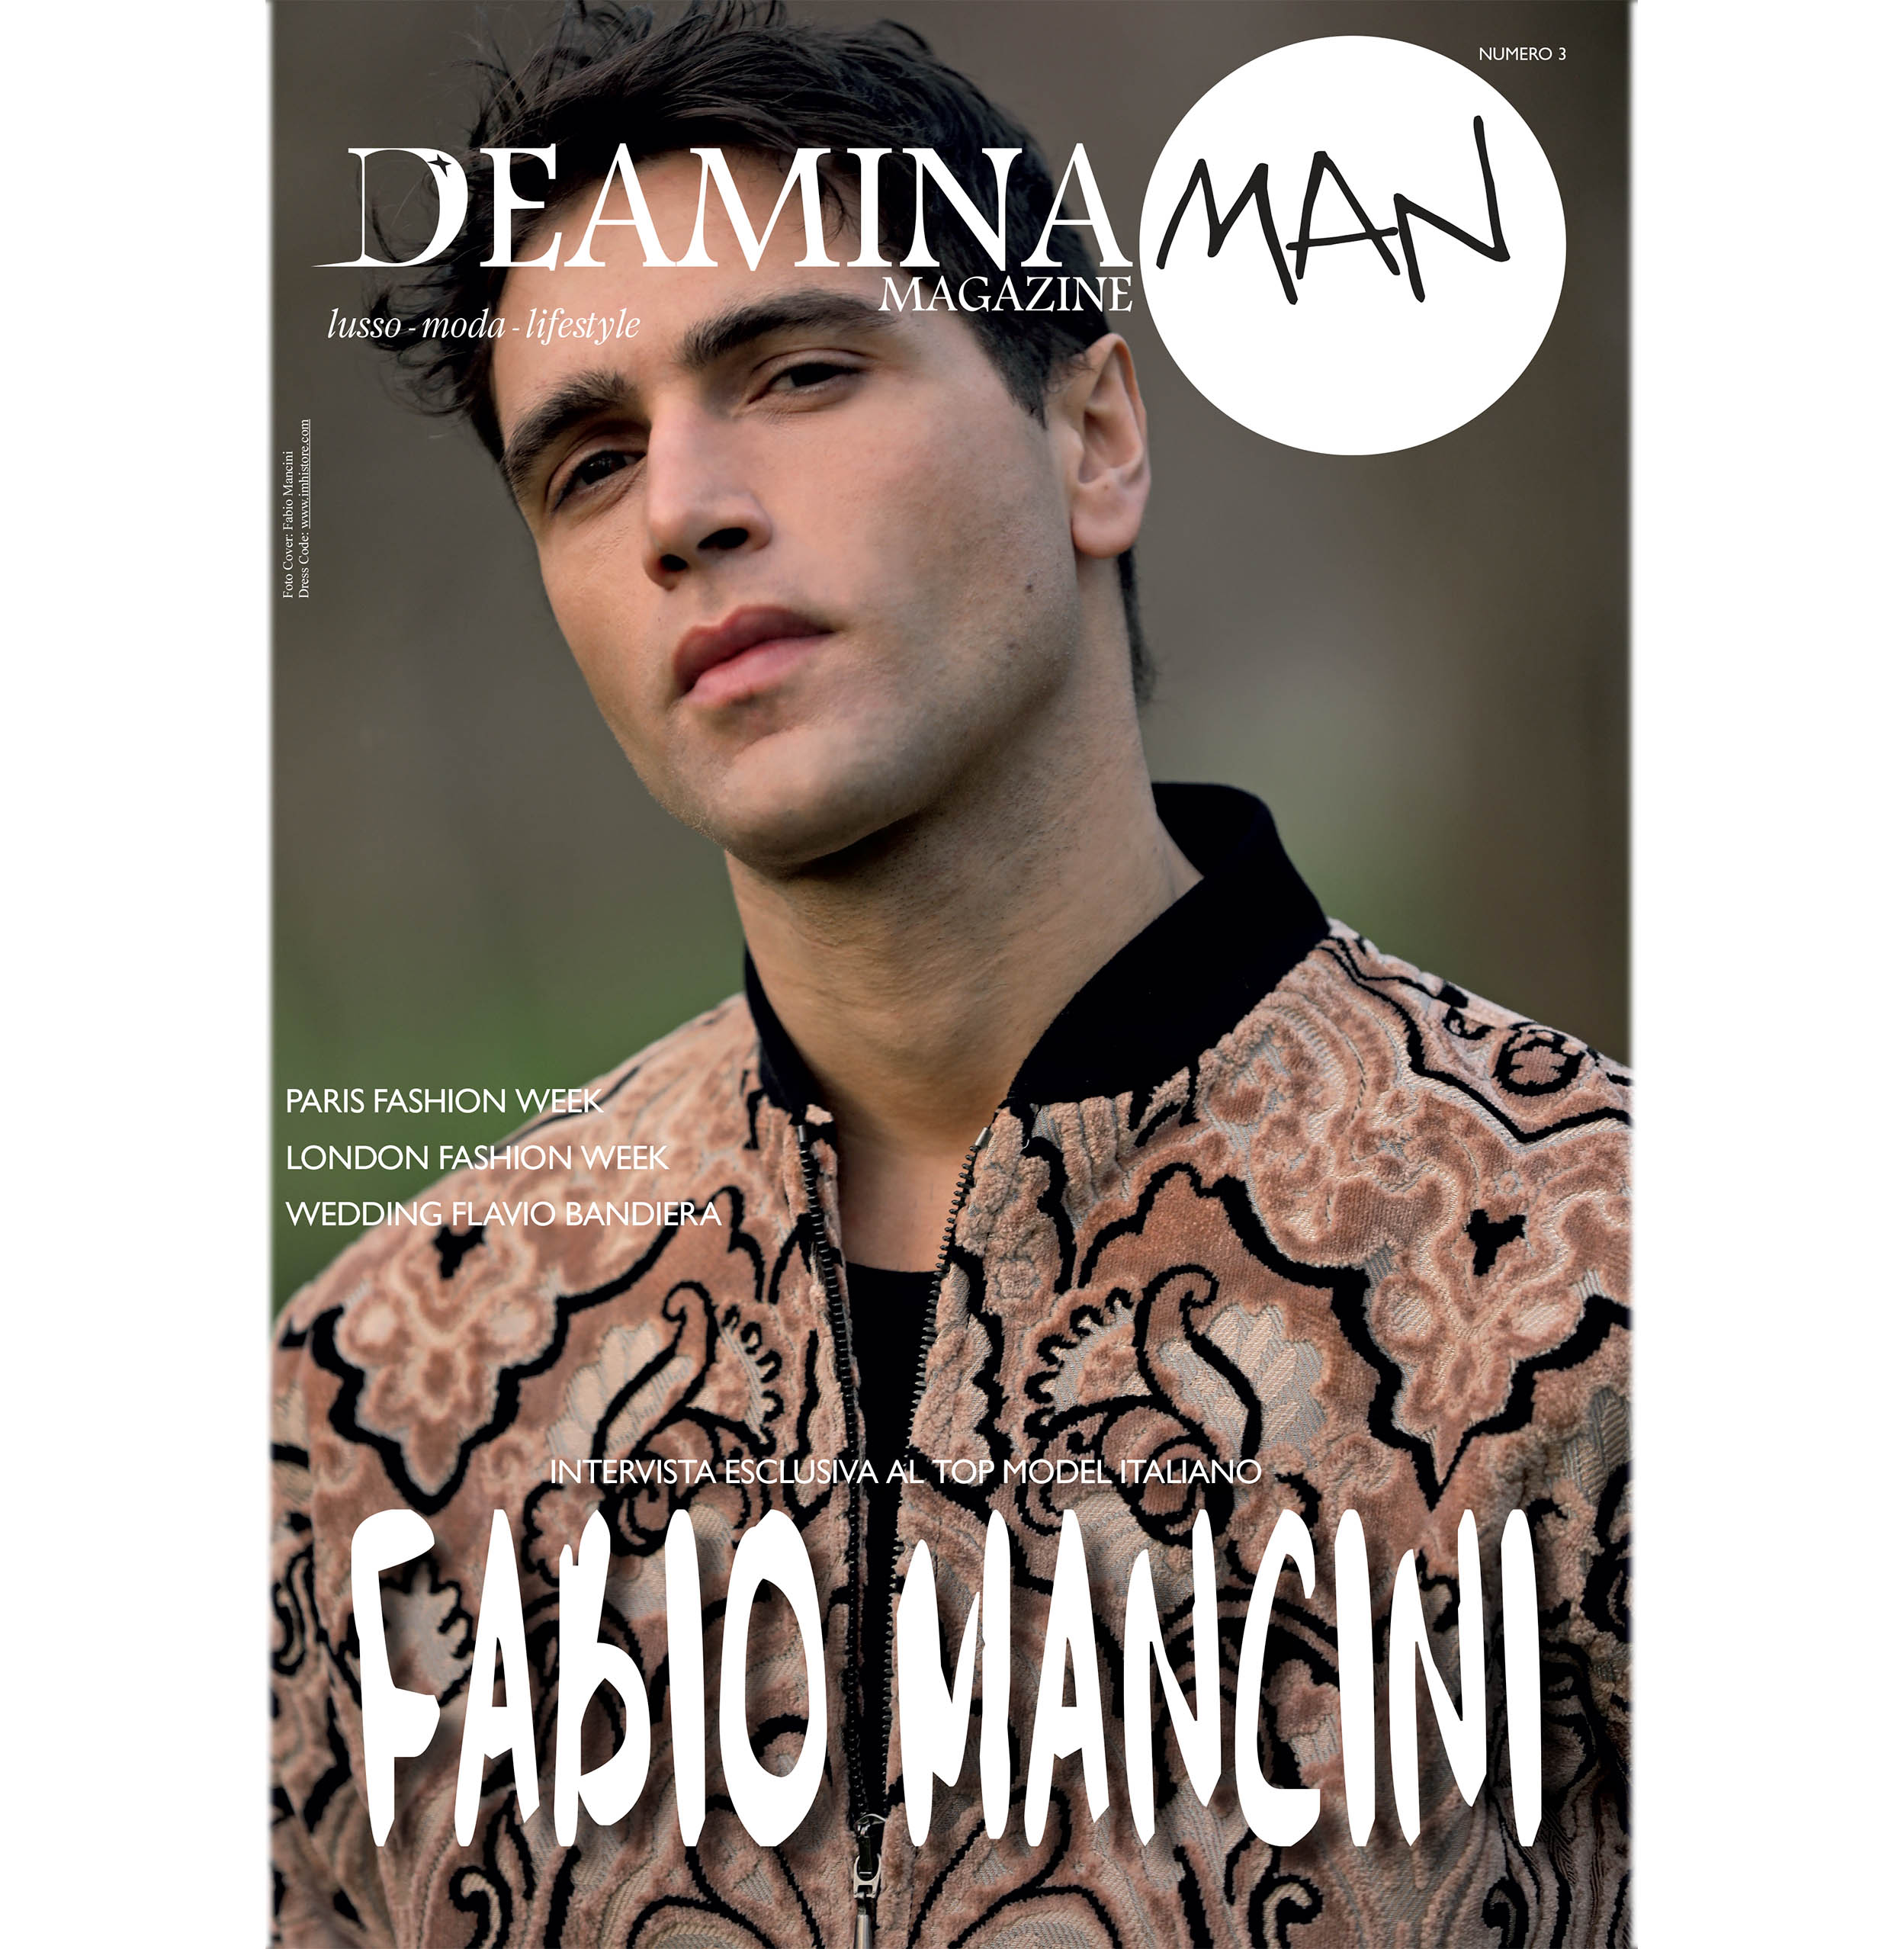 Deamina Magazine Cover